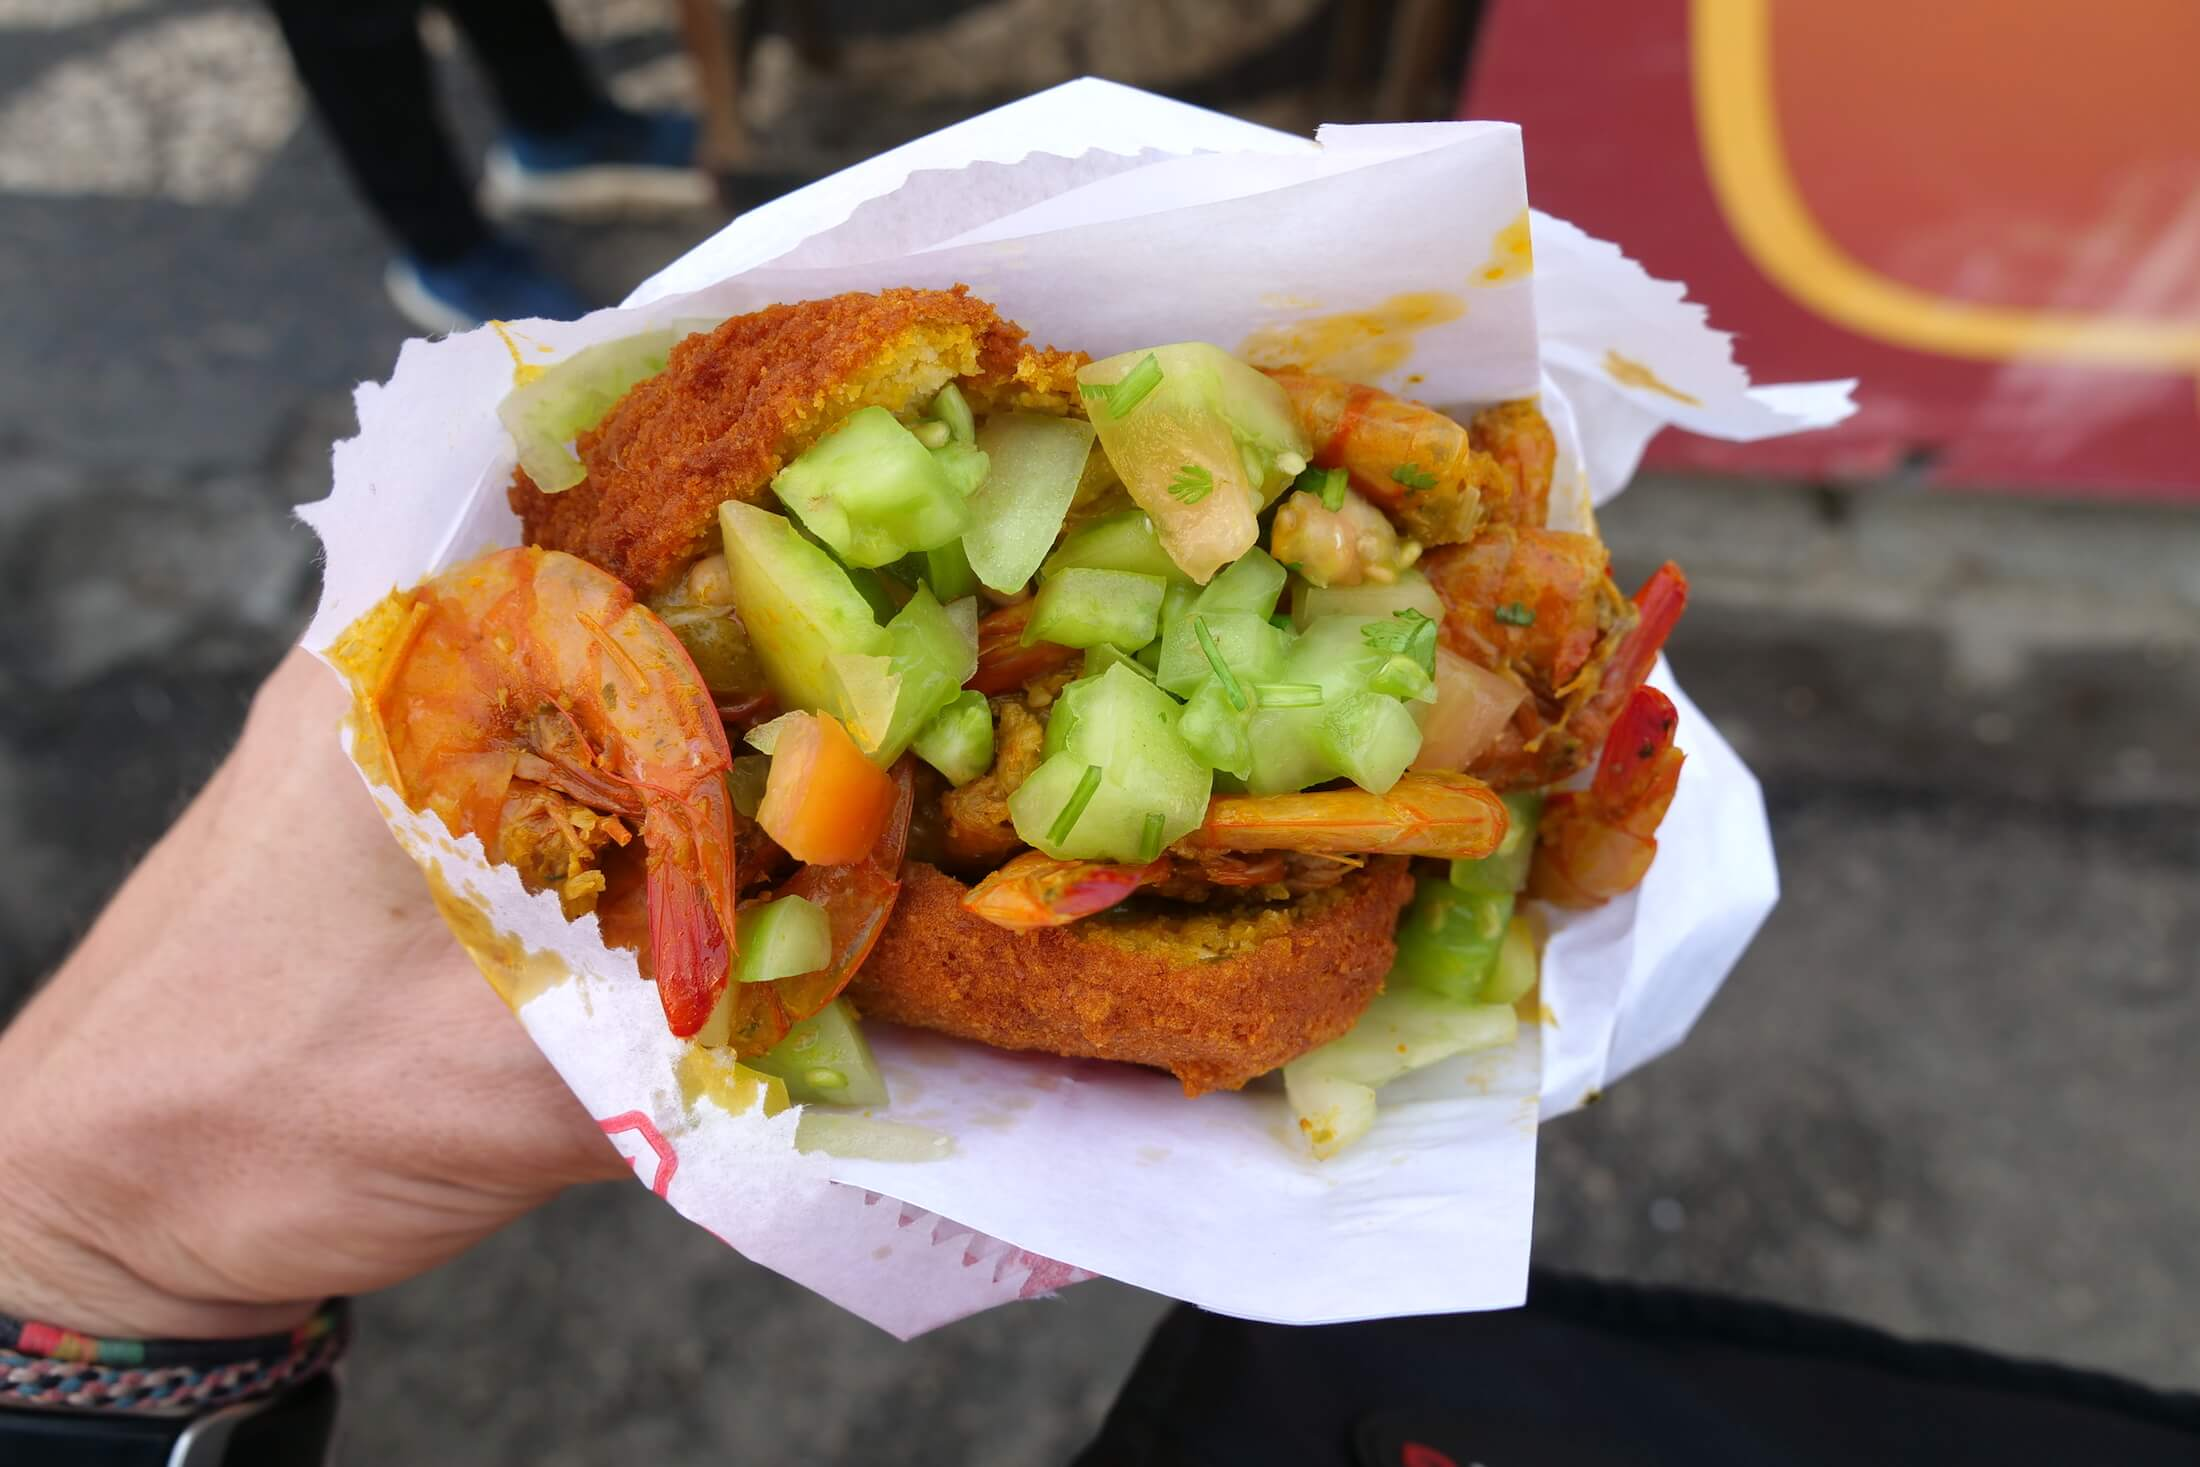 Acaraje is one of the most amazing street foods in the entire world